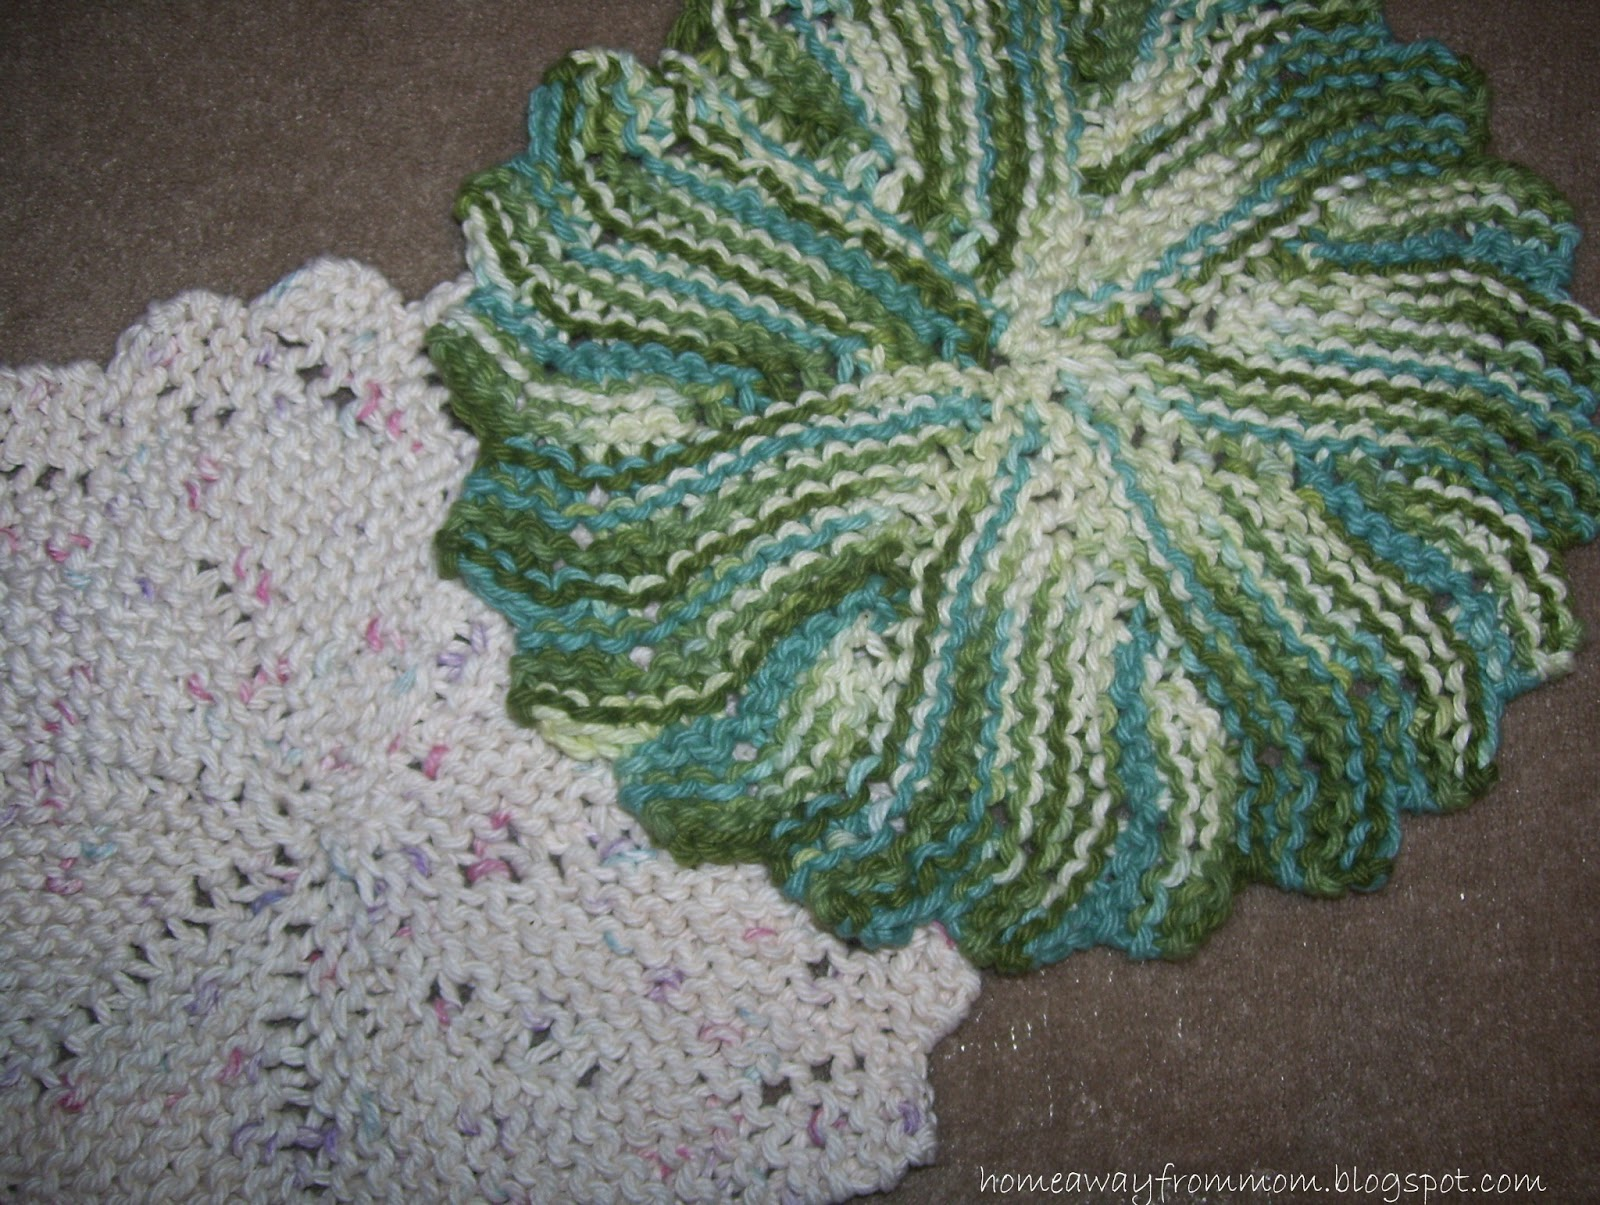 Home away from Mom: Knitting Project #3/ Round Knit Dishcloth